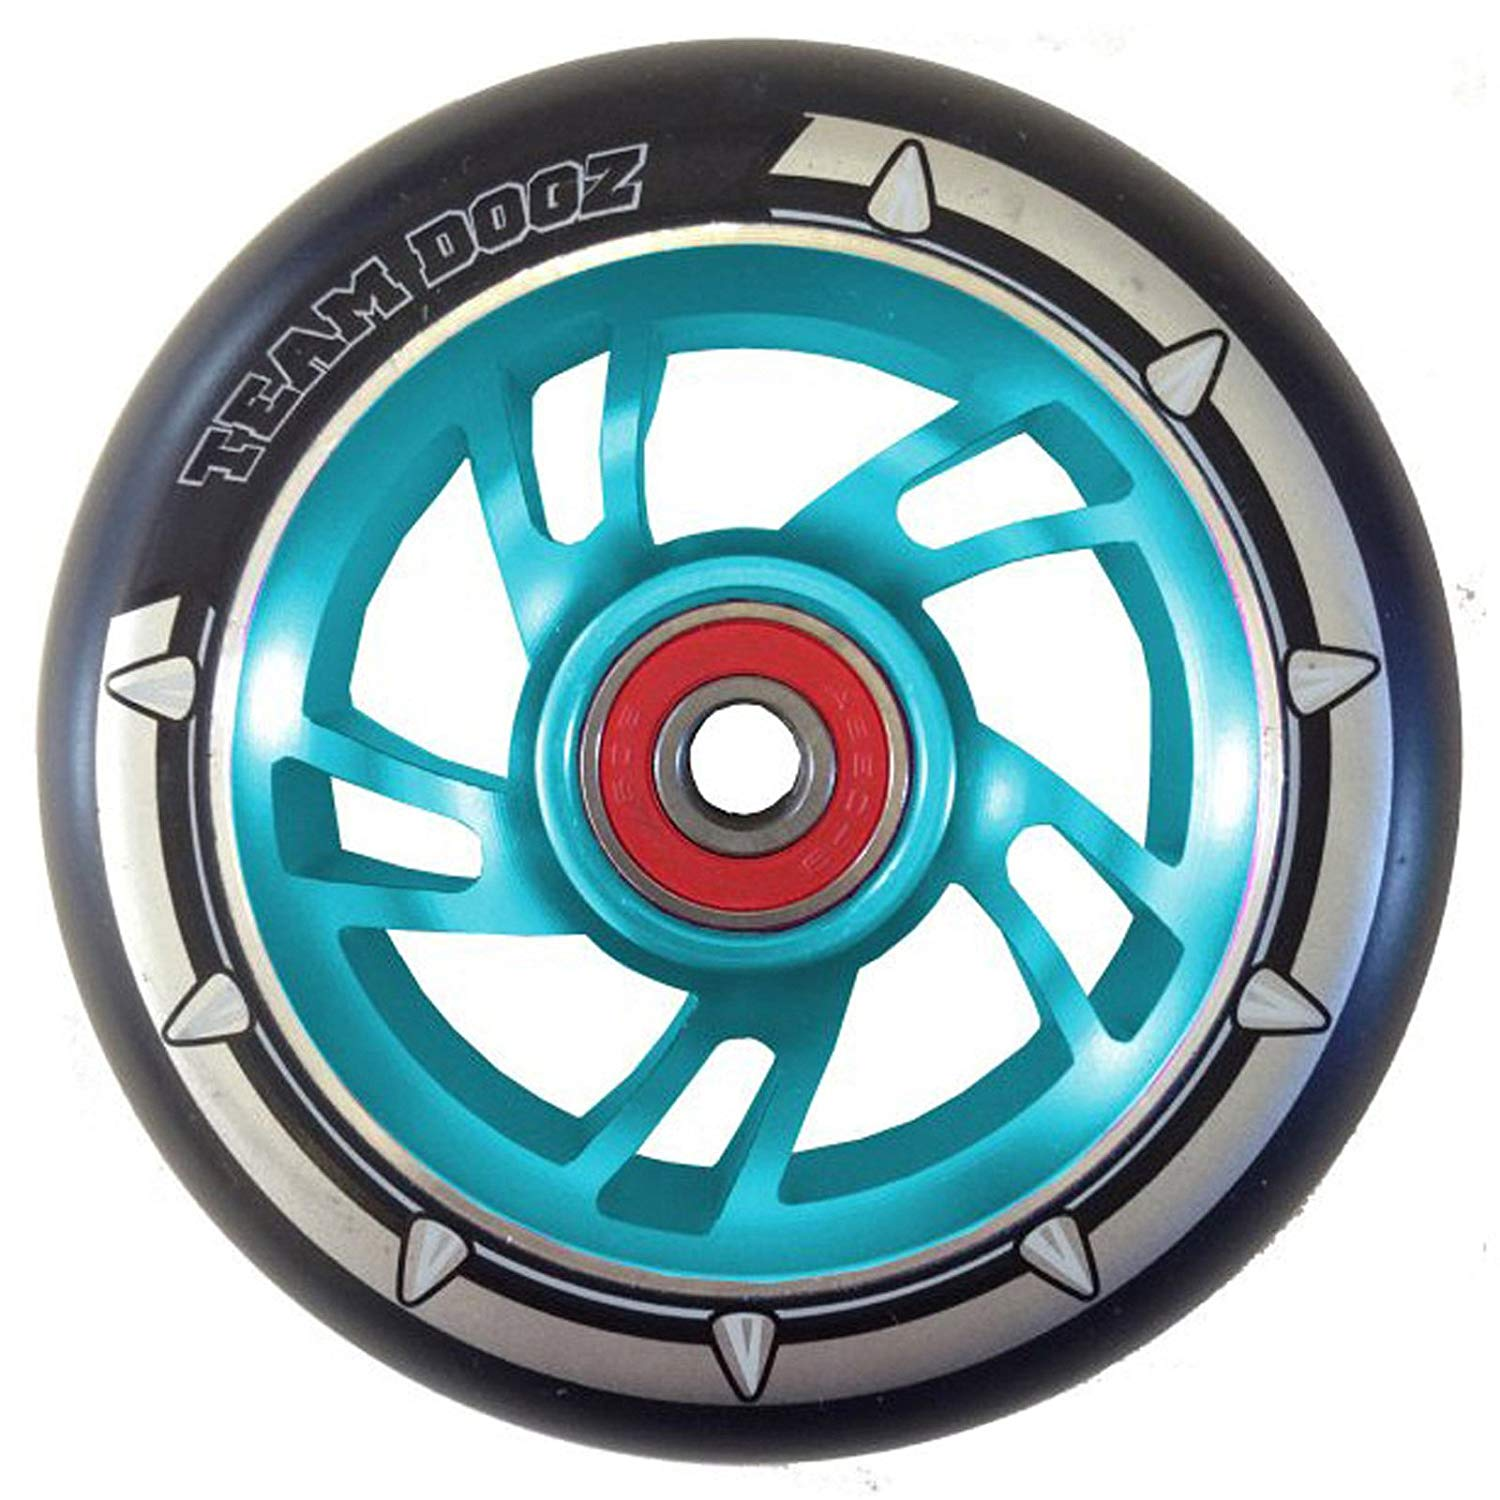 Team Dogz 100mm Swirl Scooter Wheel - Blue Core with Black Tyre